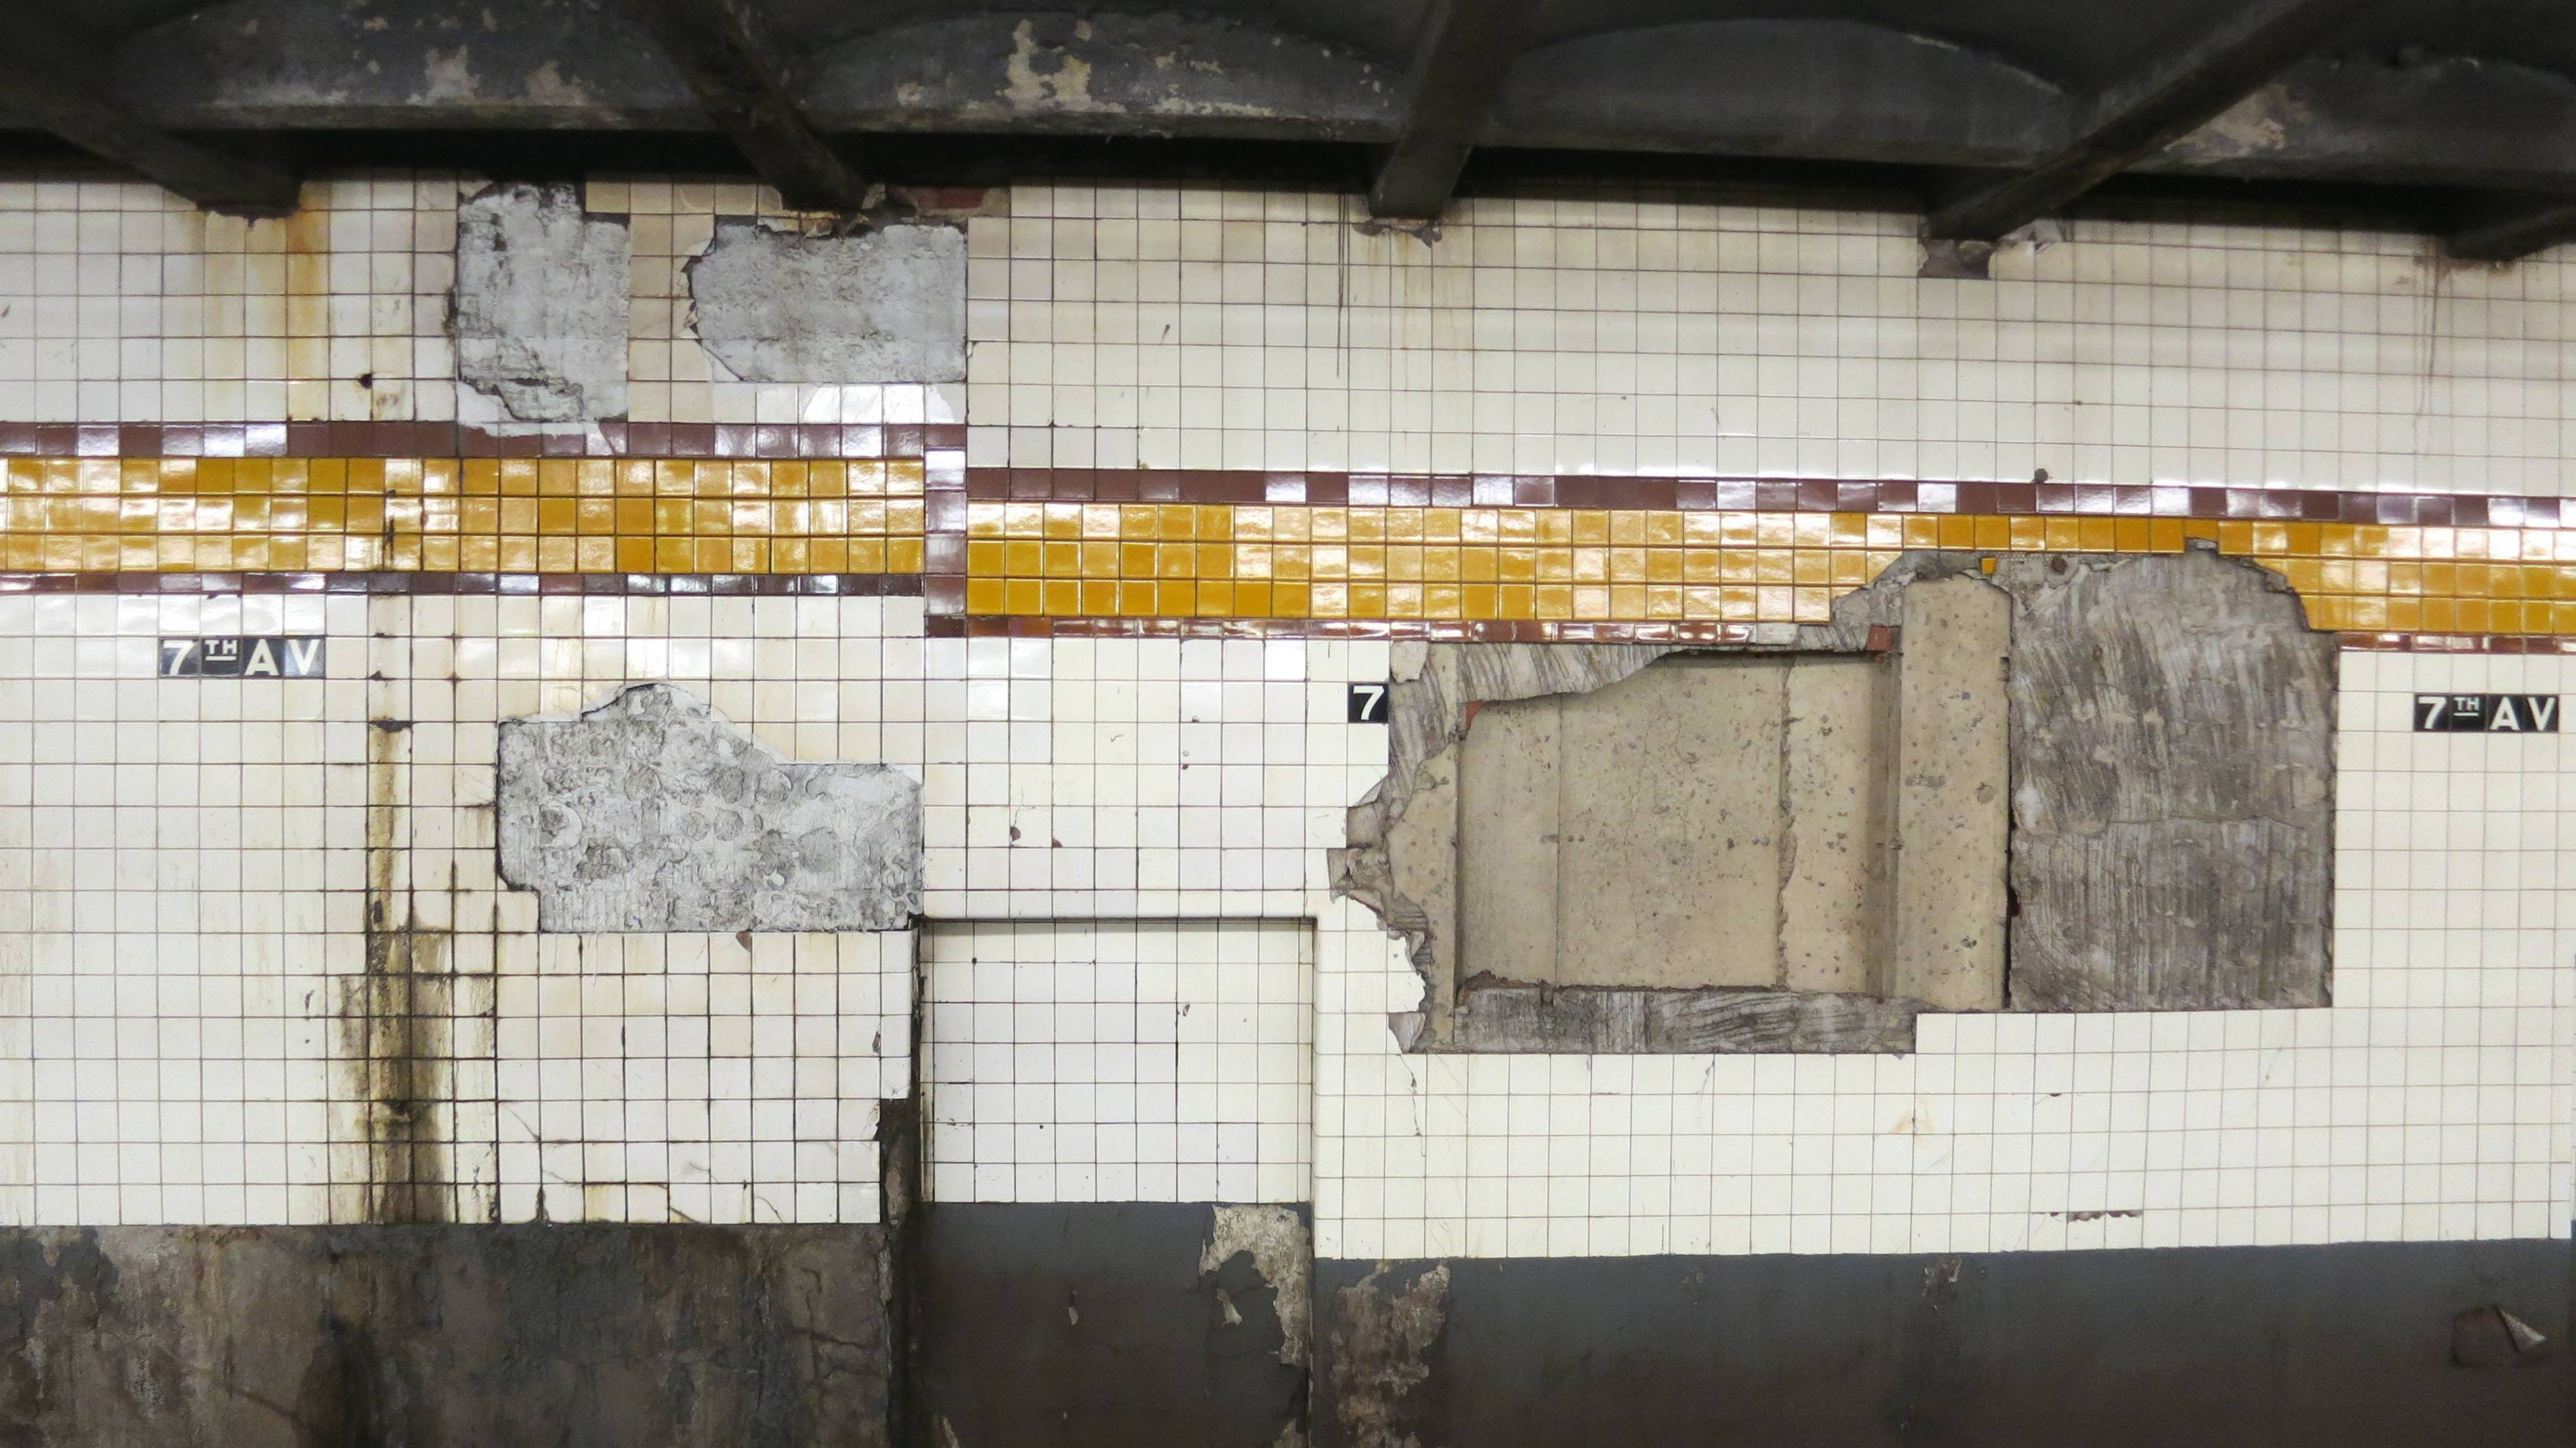 Weekend subway service: 3 trains down for the count | 6sqft